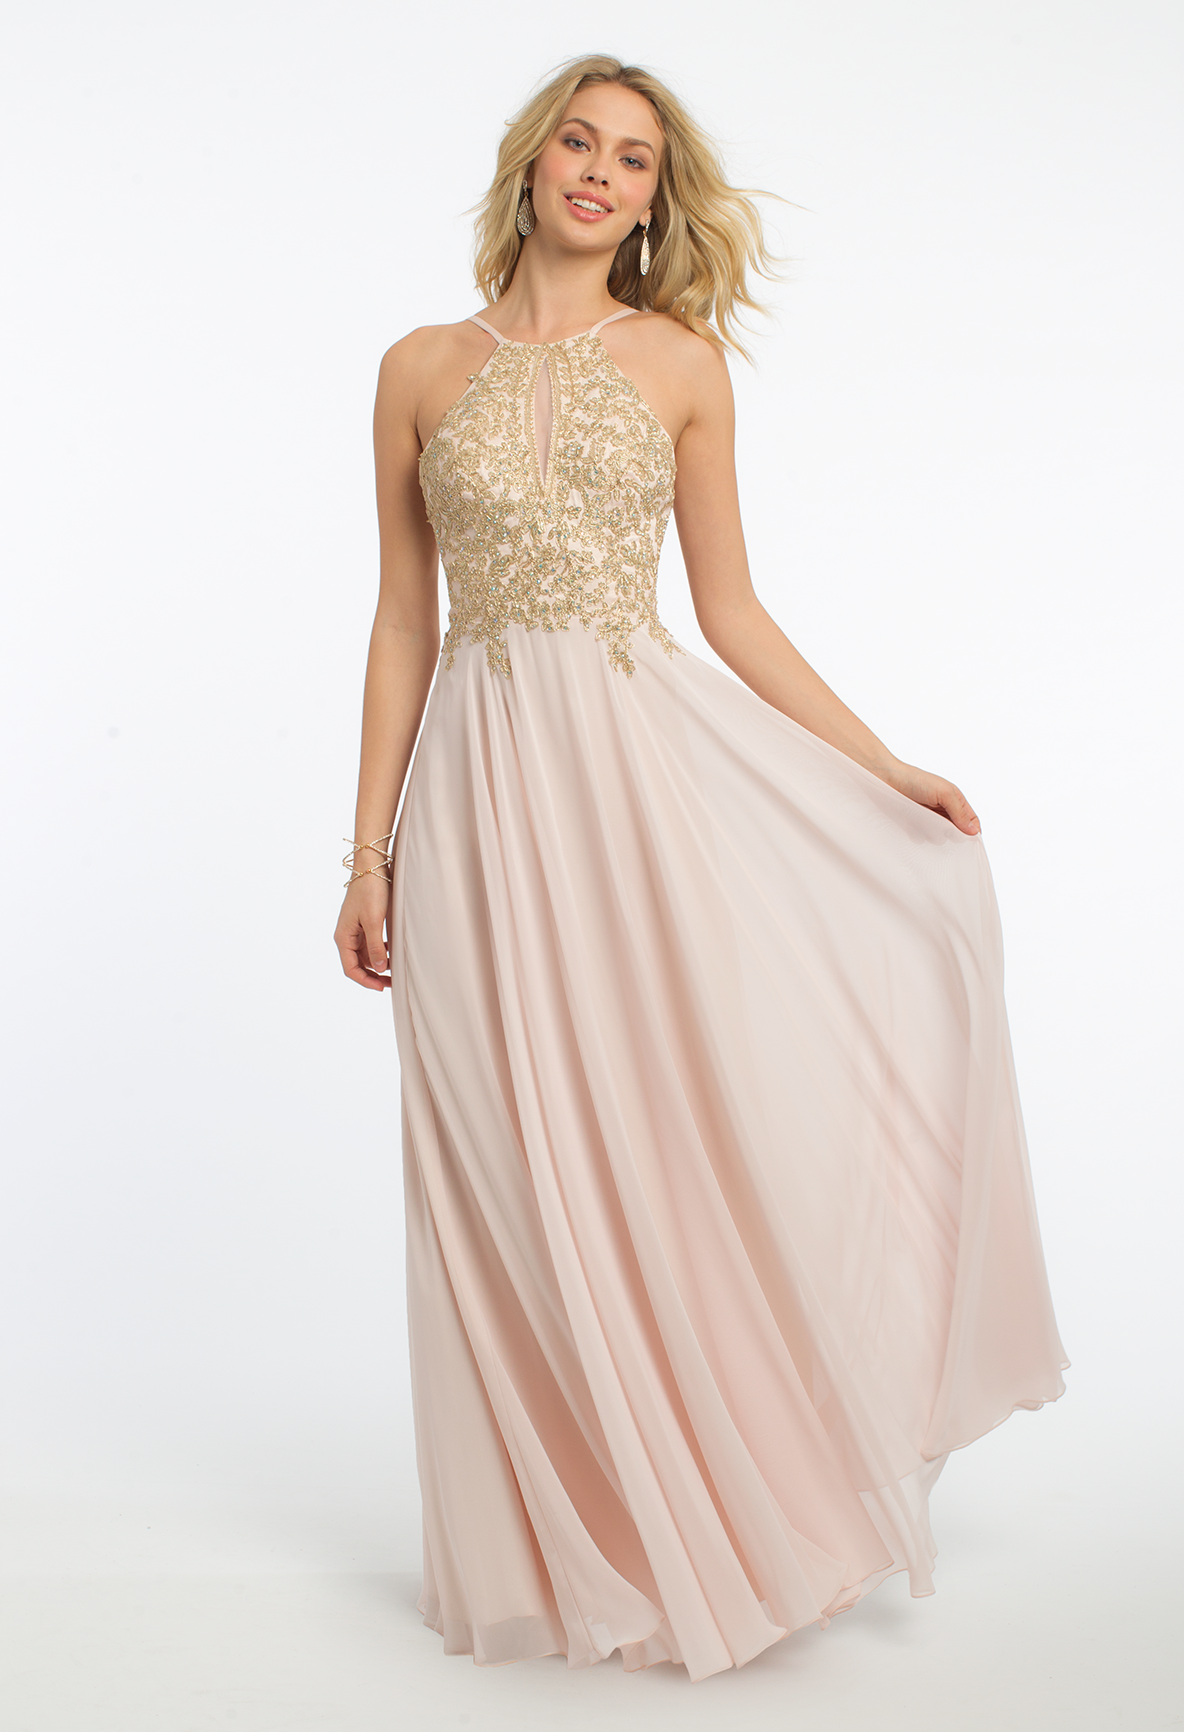 Prepare For A Picture Perfect Night In This Long Evening Dress With Its Halter Neckline Metallic Embroidered Dresses Wedding Guest Dress Evening Dresses Long [ 1732 x 1184 Pixel ]